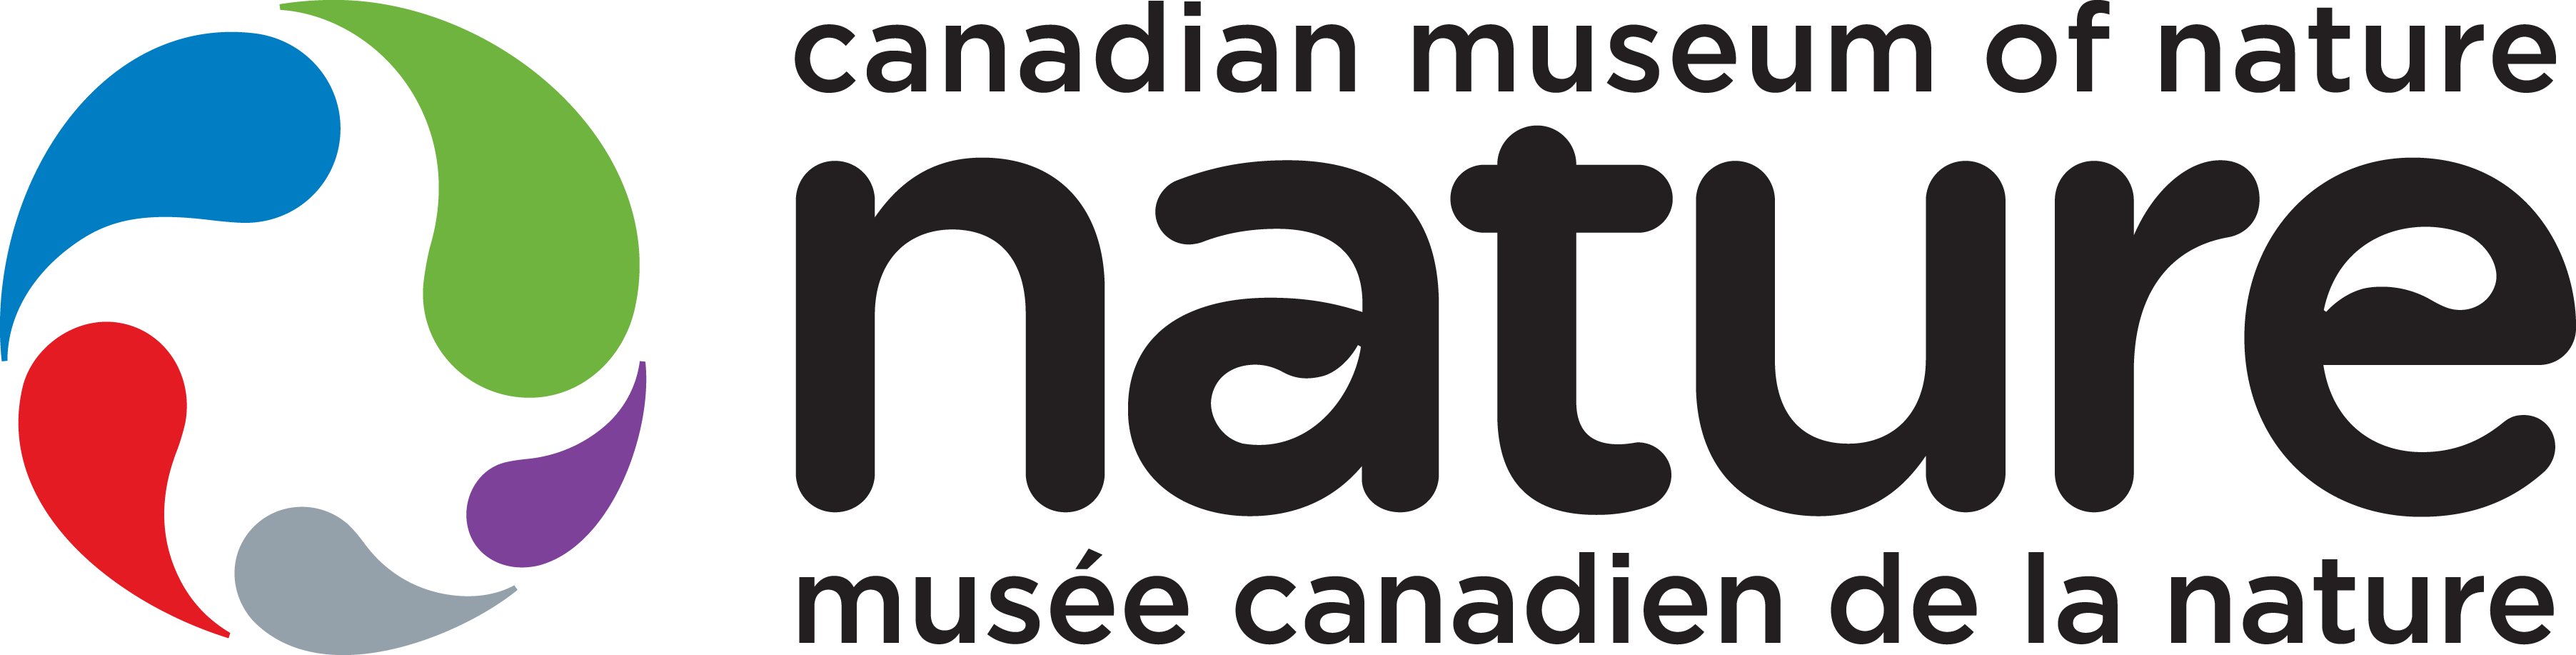 Finalists announced for 2019 Nature Inspiration Awards fromCanadian Museum of Nature;Ceremony on November 13, 2019